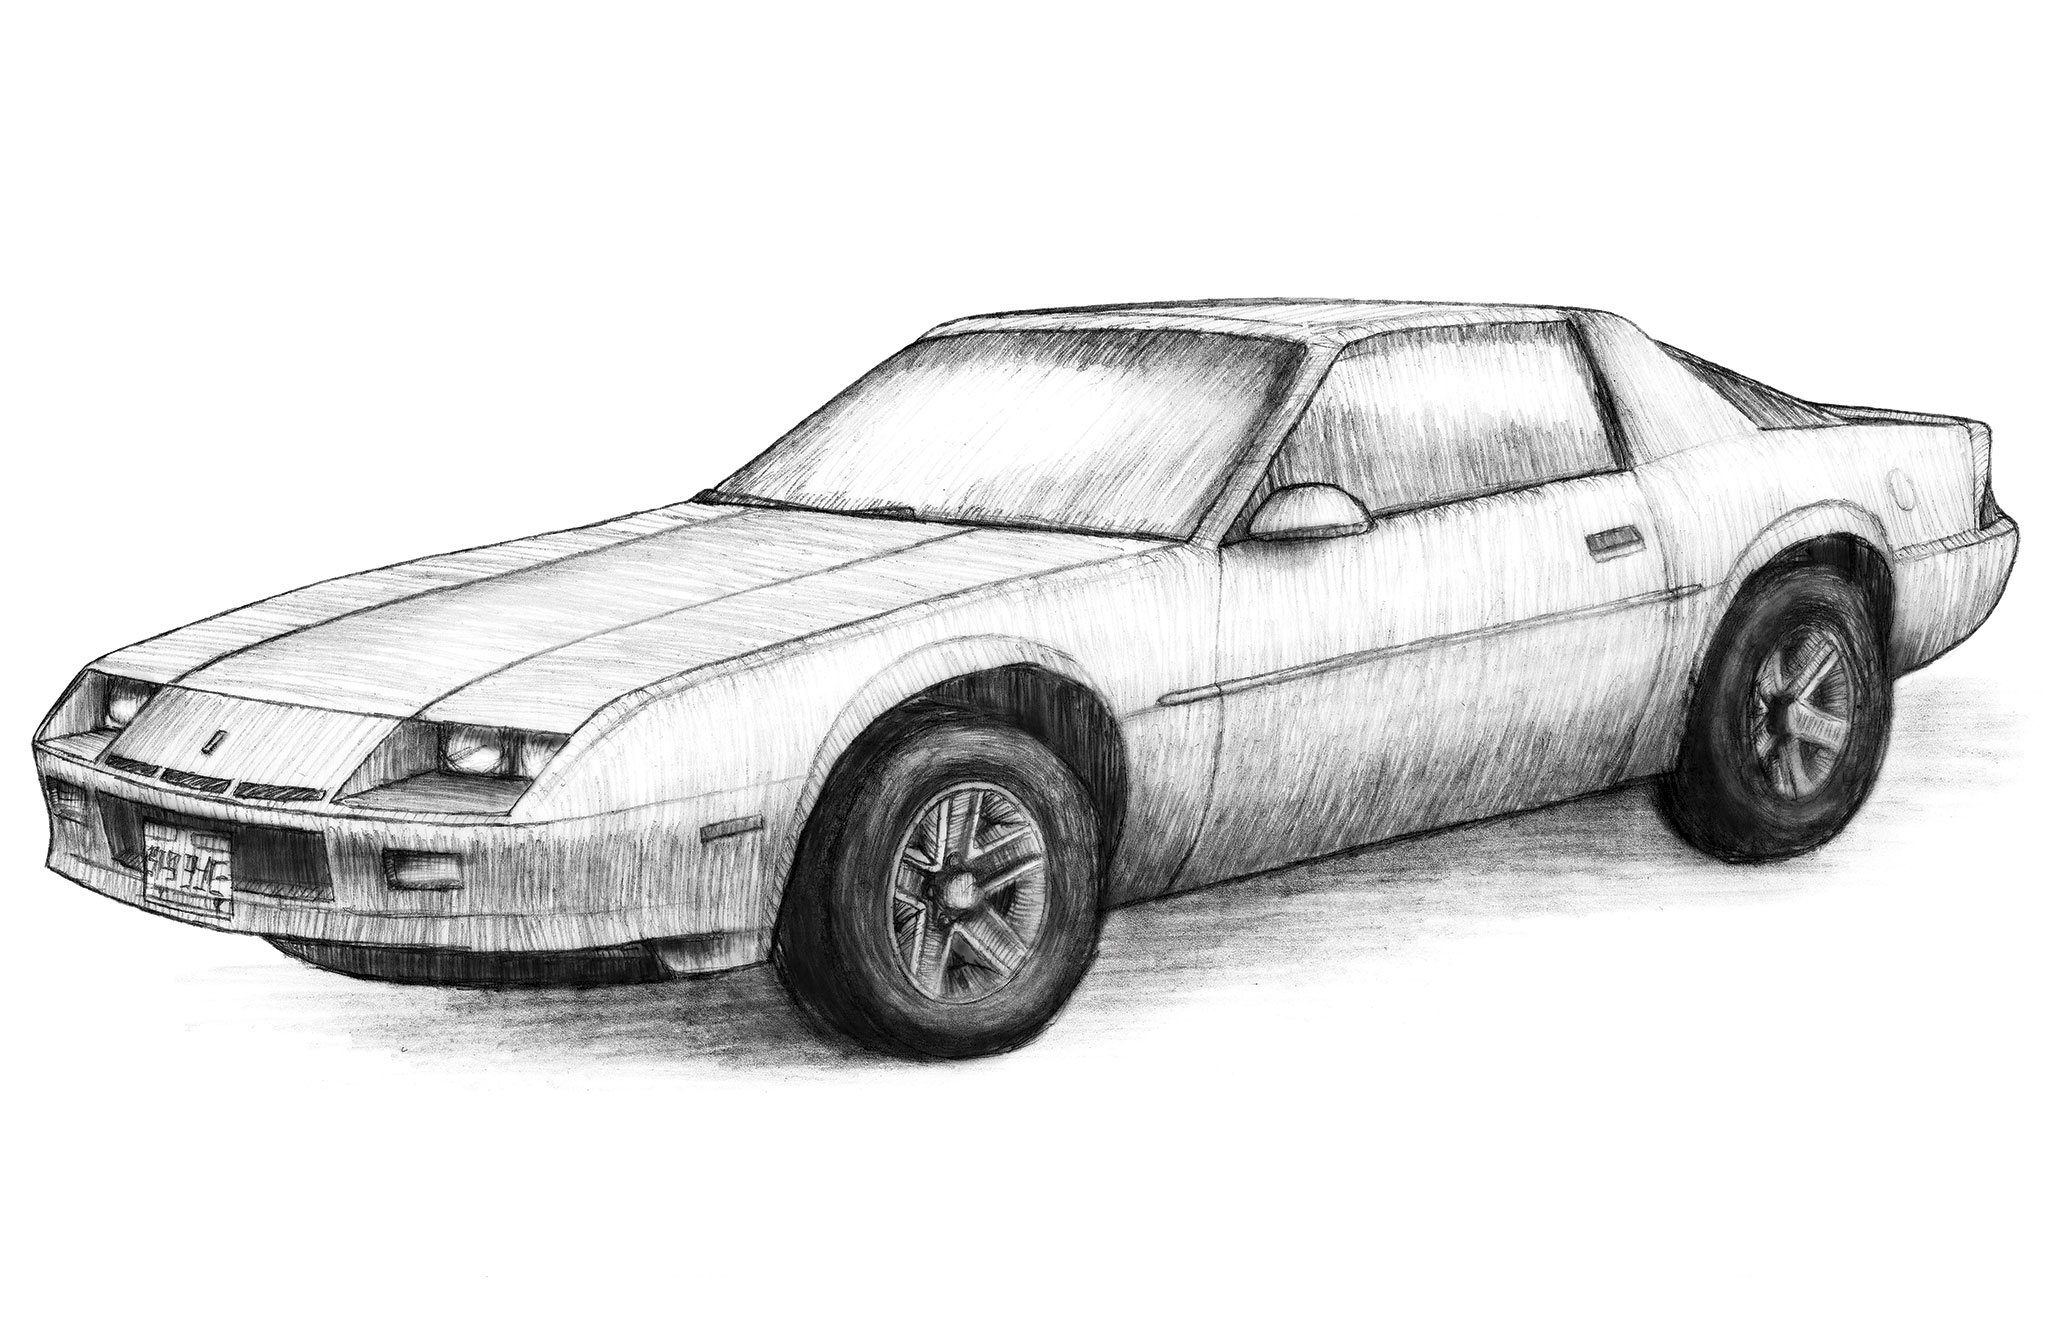 Camaro Sport Coupe Sketch